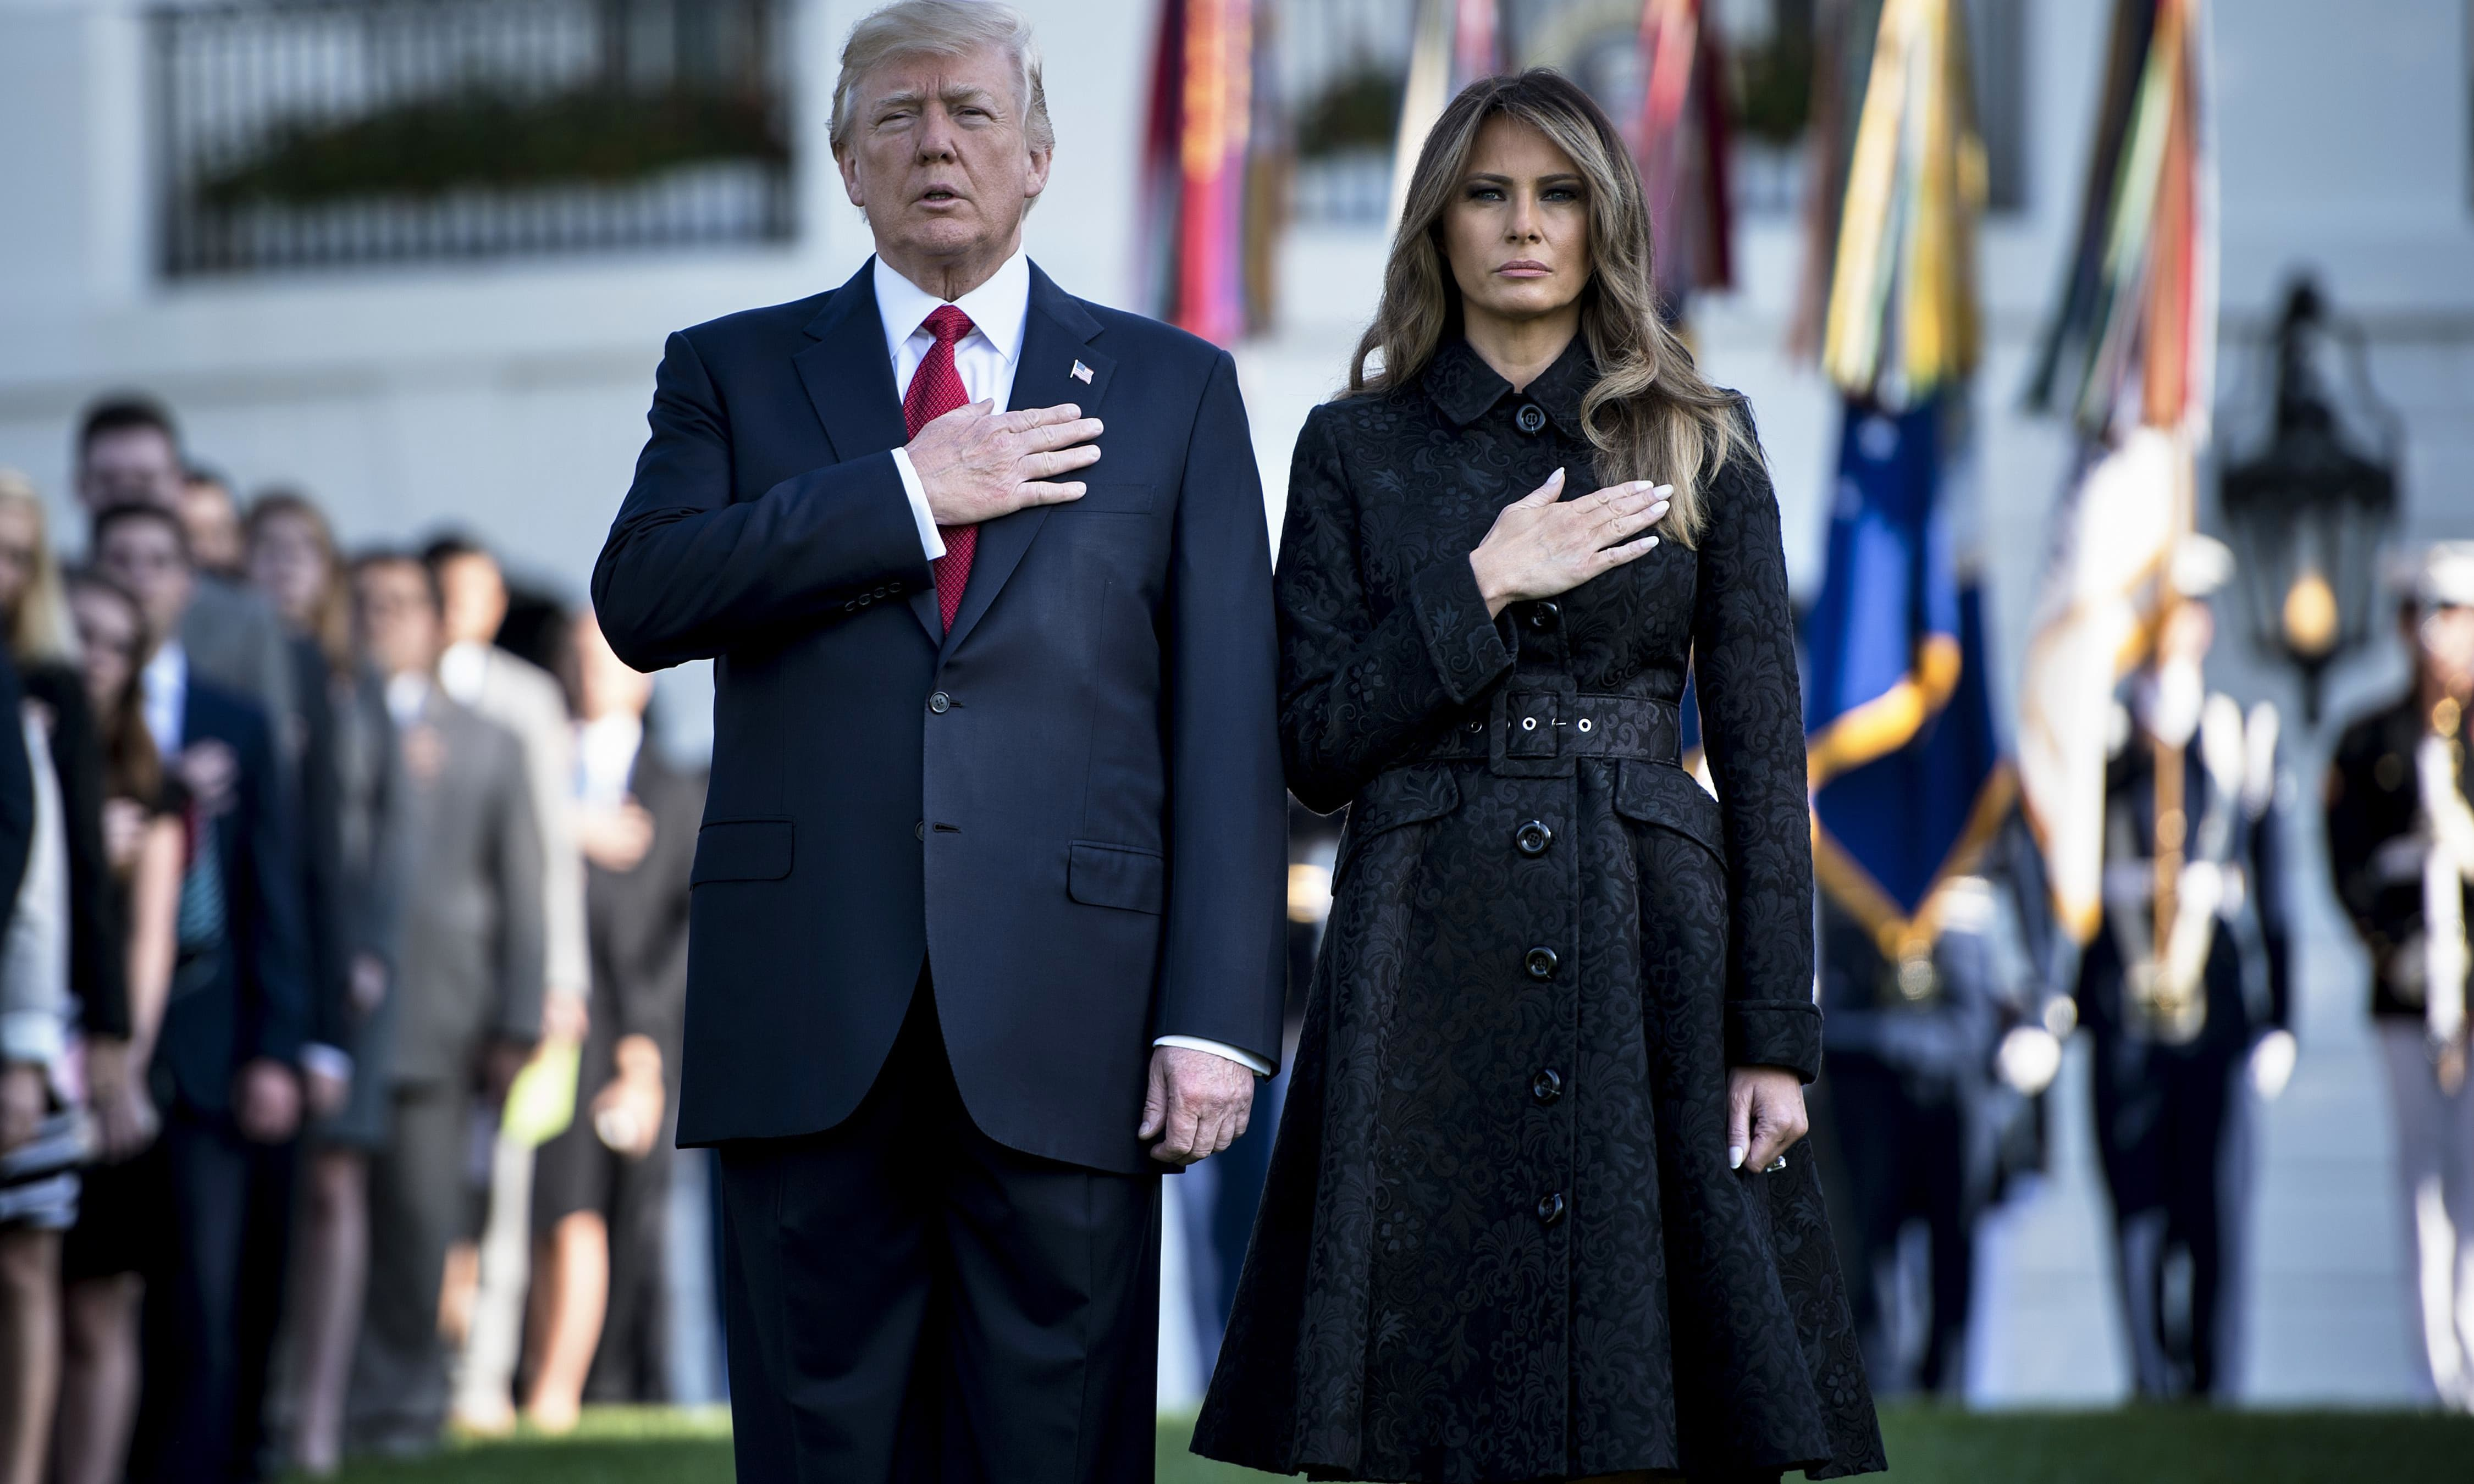 US President Donald Trump and First Lady Melania Trump observe a moment of silence on September 11, 2017 at the White House. —AFP